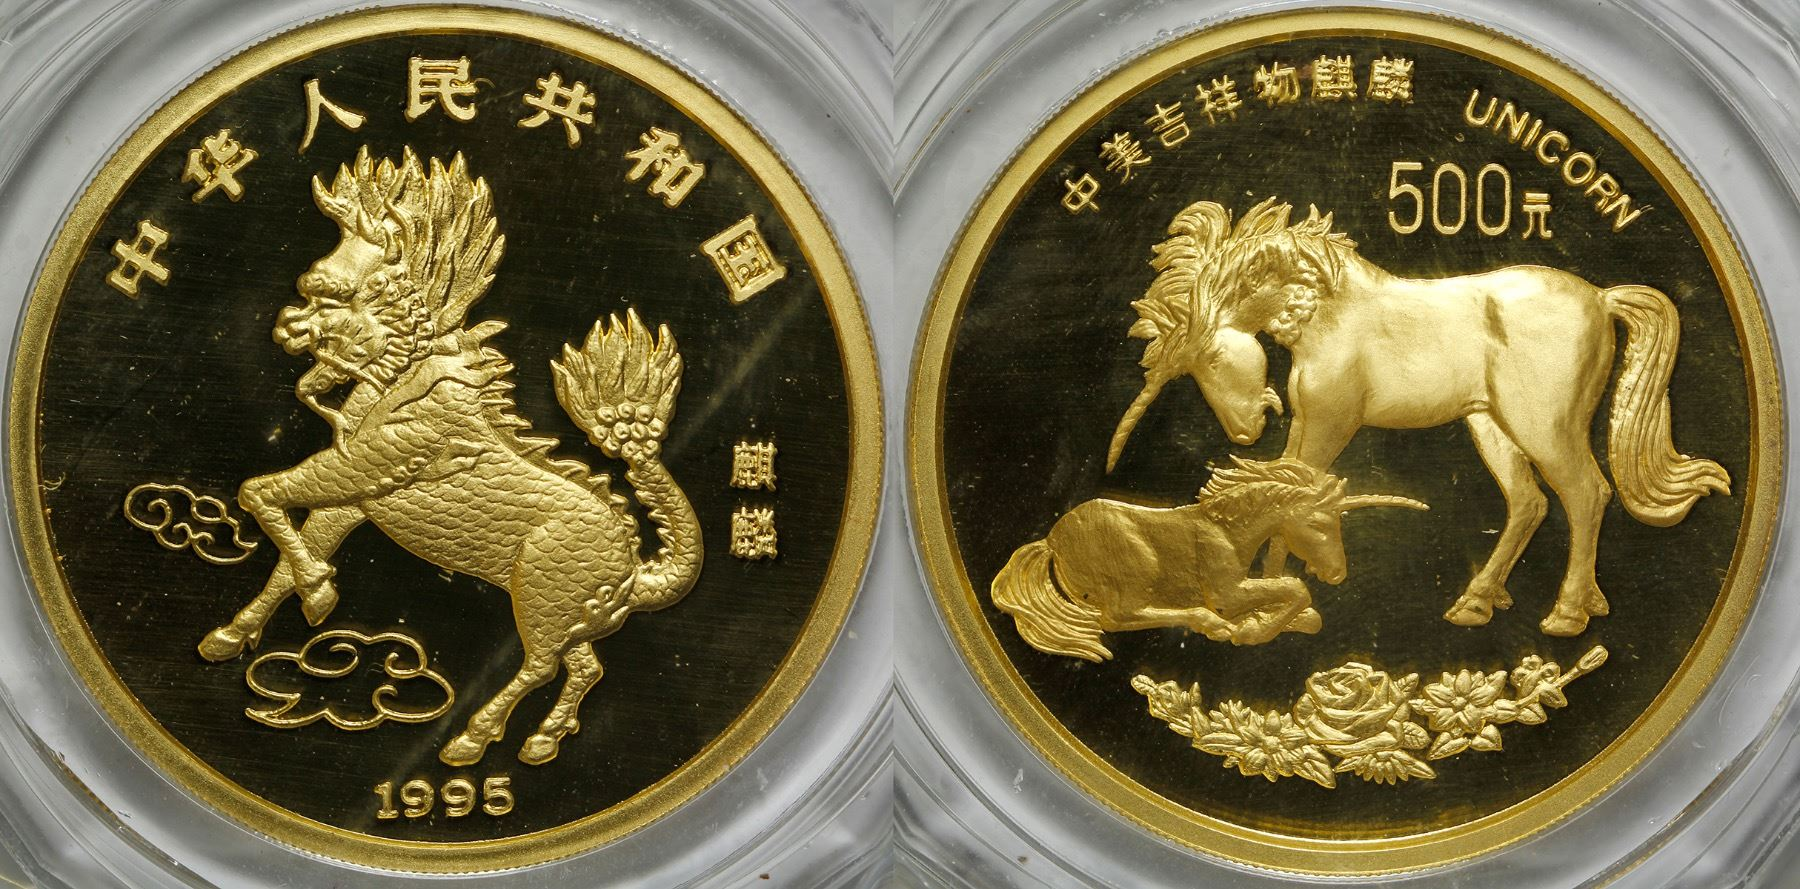 Image 1 Beloved Unicorn 5 Ounce Chinese Gold Coin